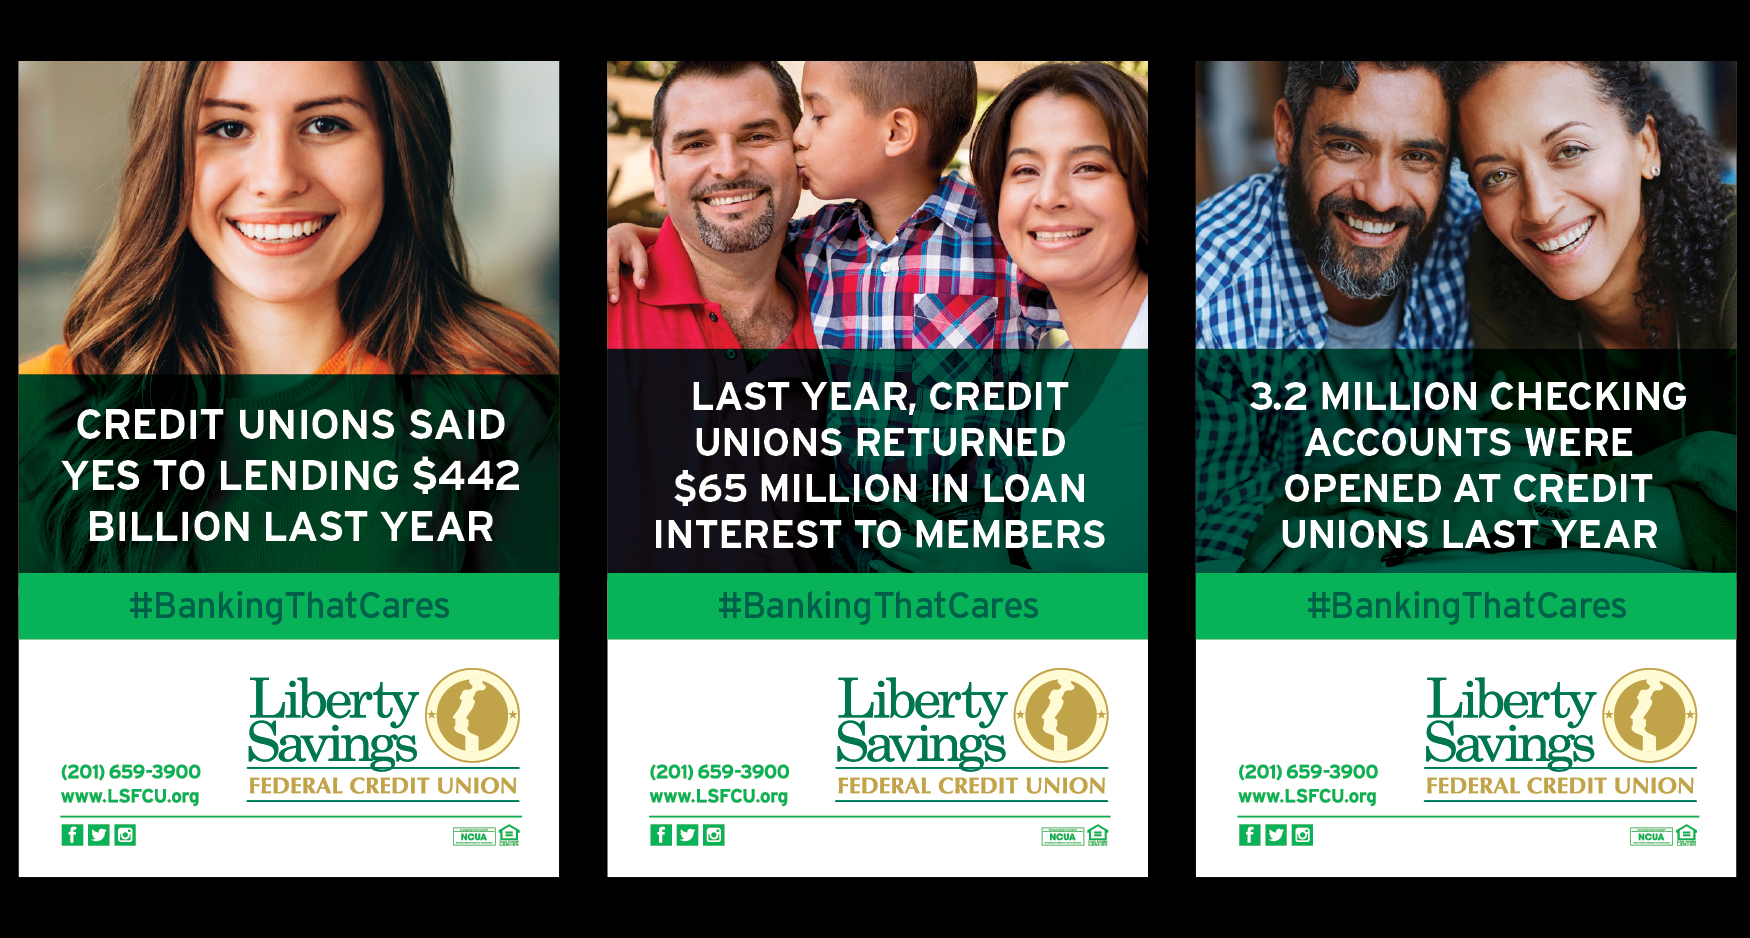 Stats2b - LIBERTY SAVINGS - BANKING THAT CARES CAMPAIGN